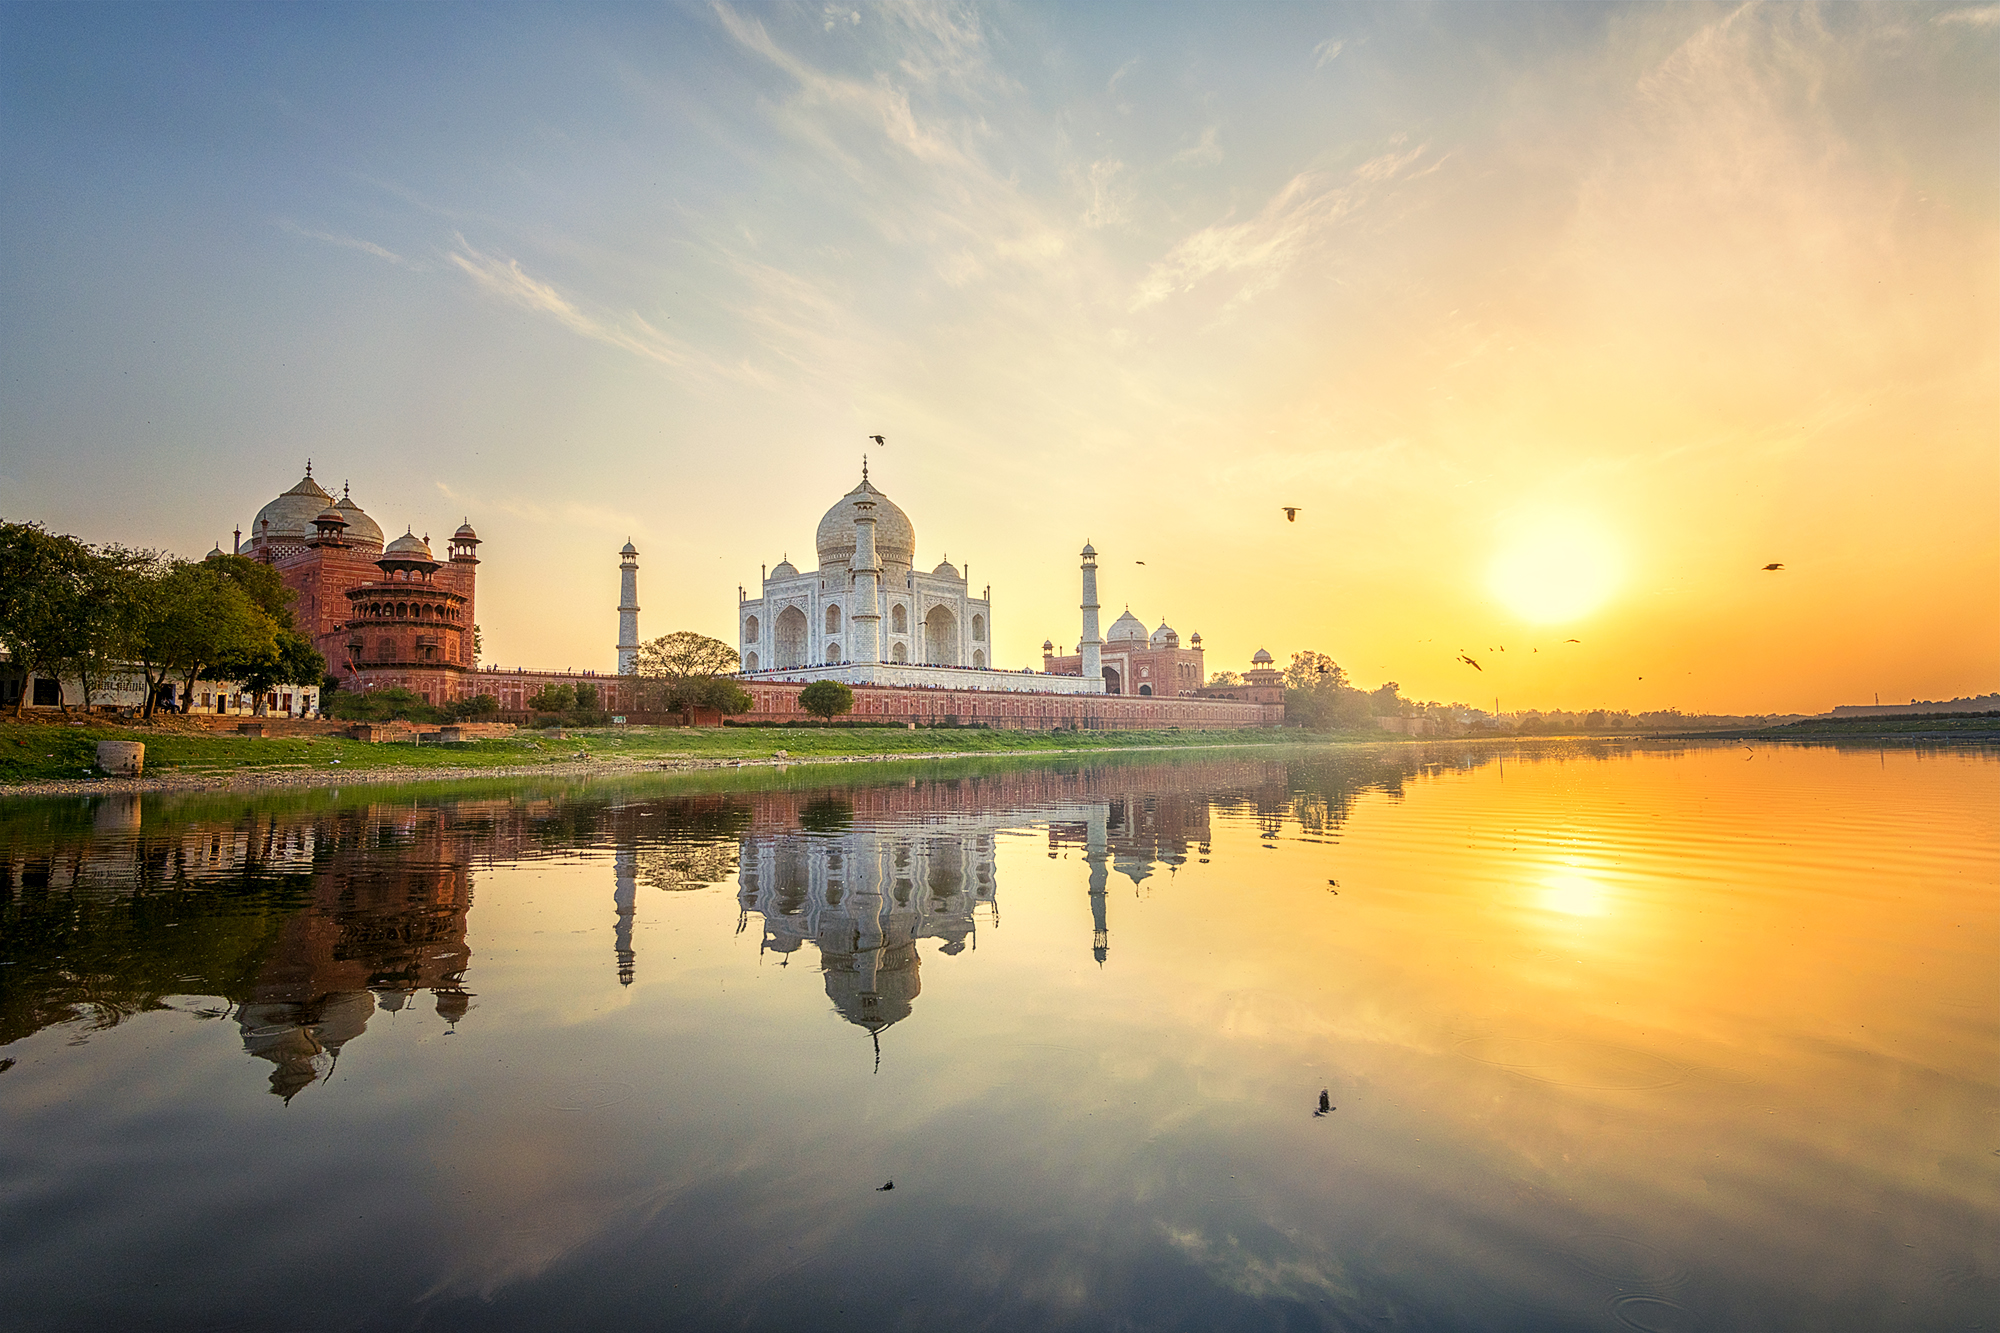 Top 5 photography spots in India